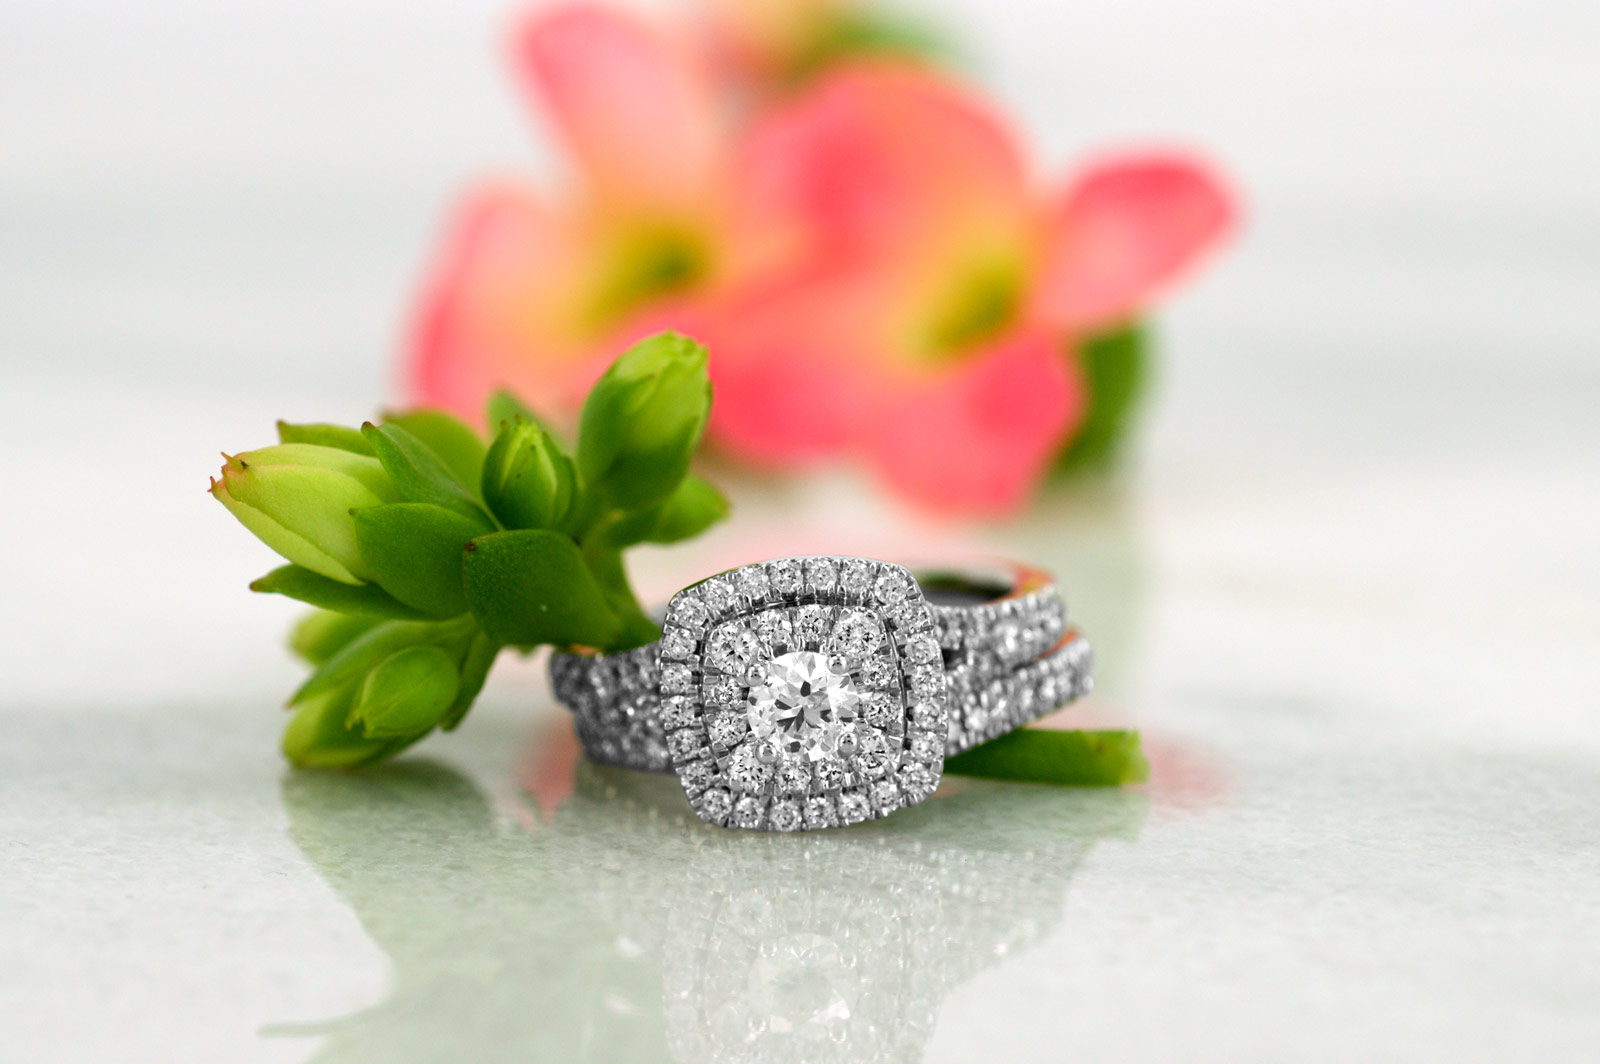 Diamond engagement ring with green and pink flowers on a marble surface